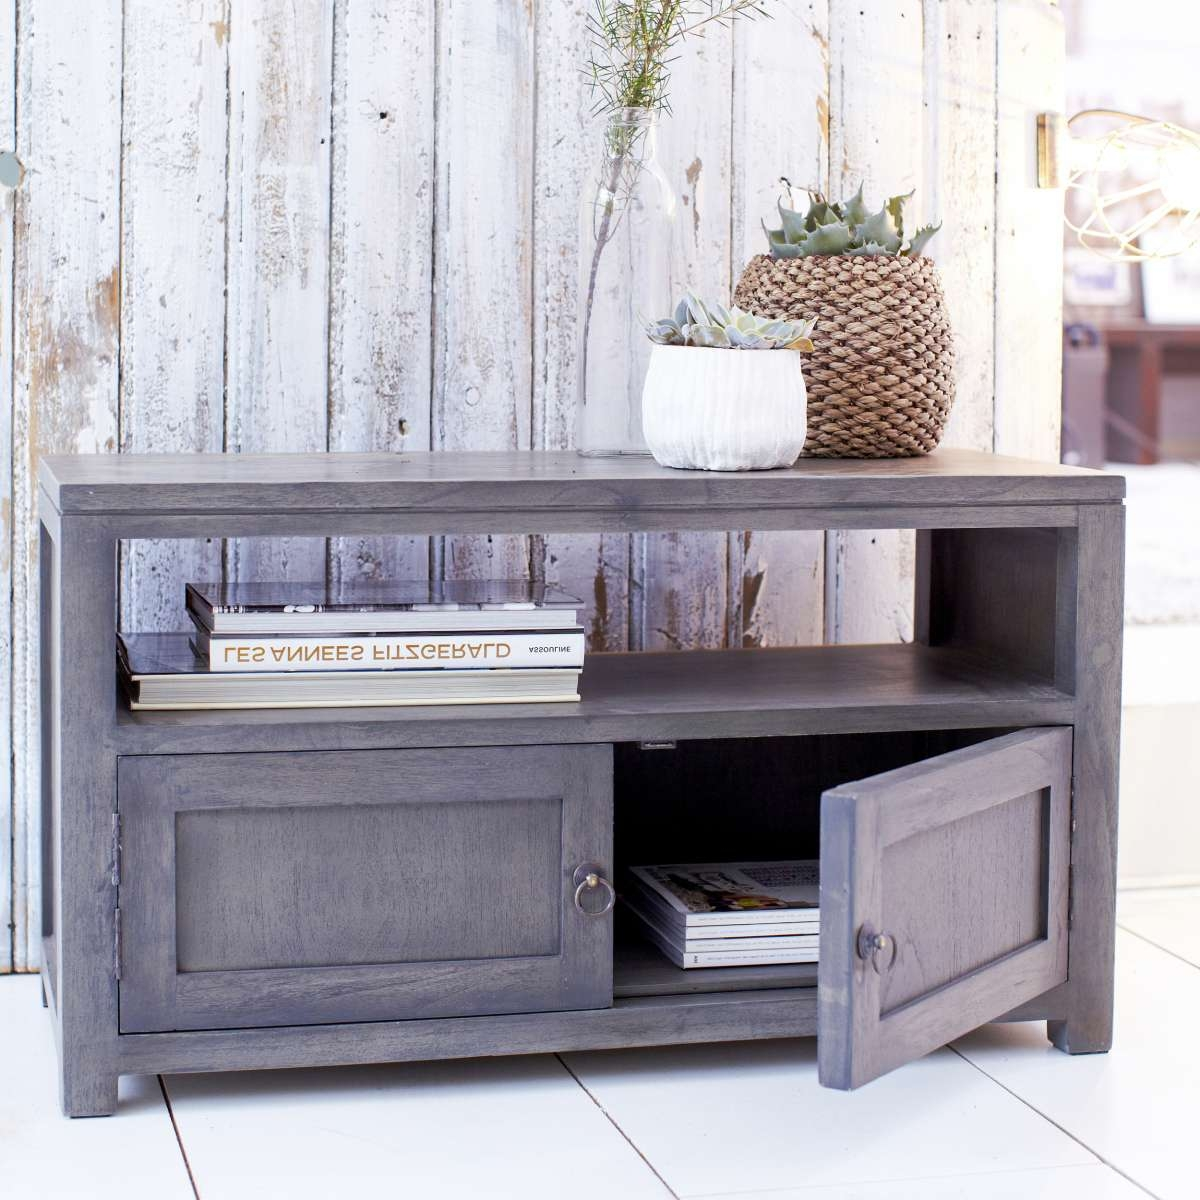 Best Grey Tv Stand : How To Make Grey Tv Stand – Indoor & Outdoor Throughout Grey Tv Stands (View 9 of 15)